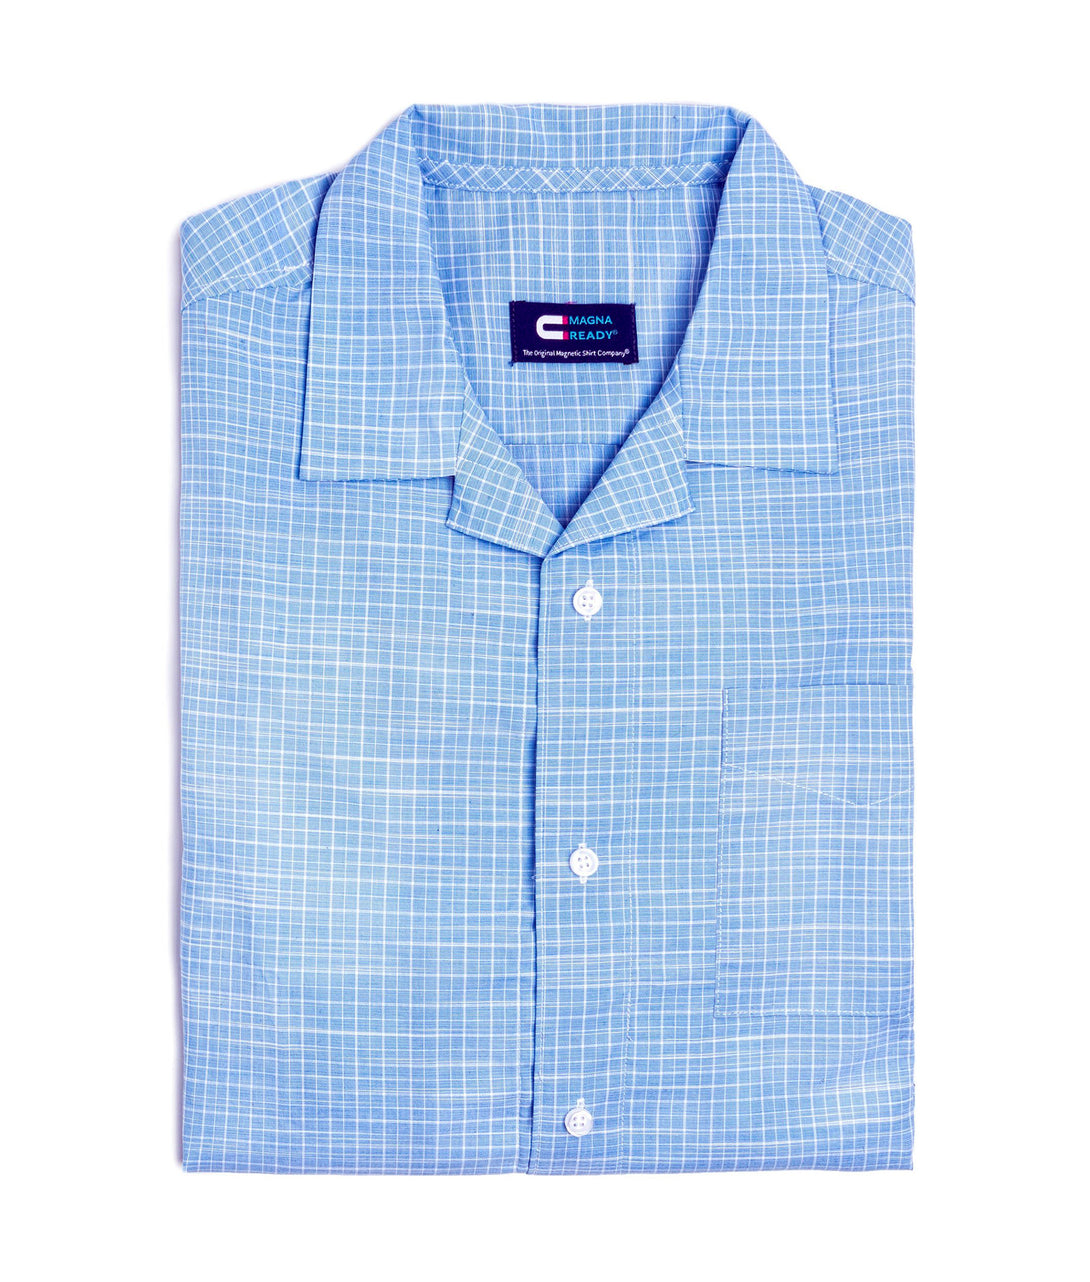 Untucked Light Blue Cotton Casual Mini Grid Camp Shirt With Magnetic Closures | JUNIPERunltd